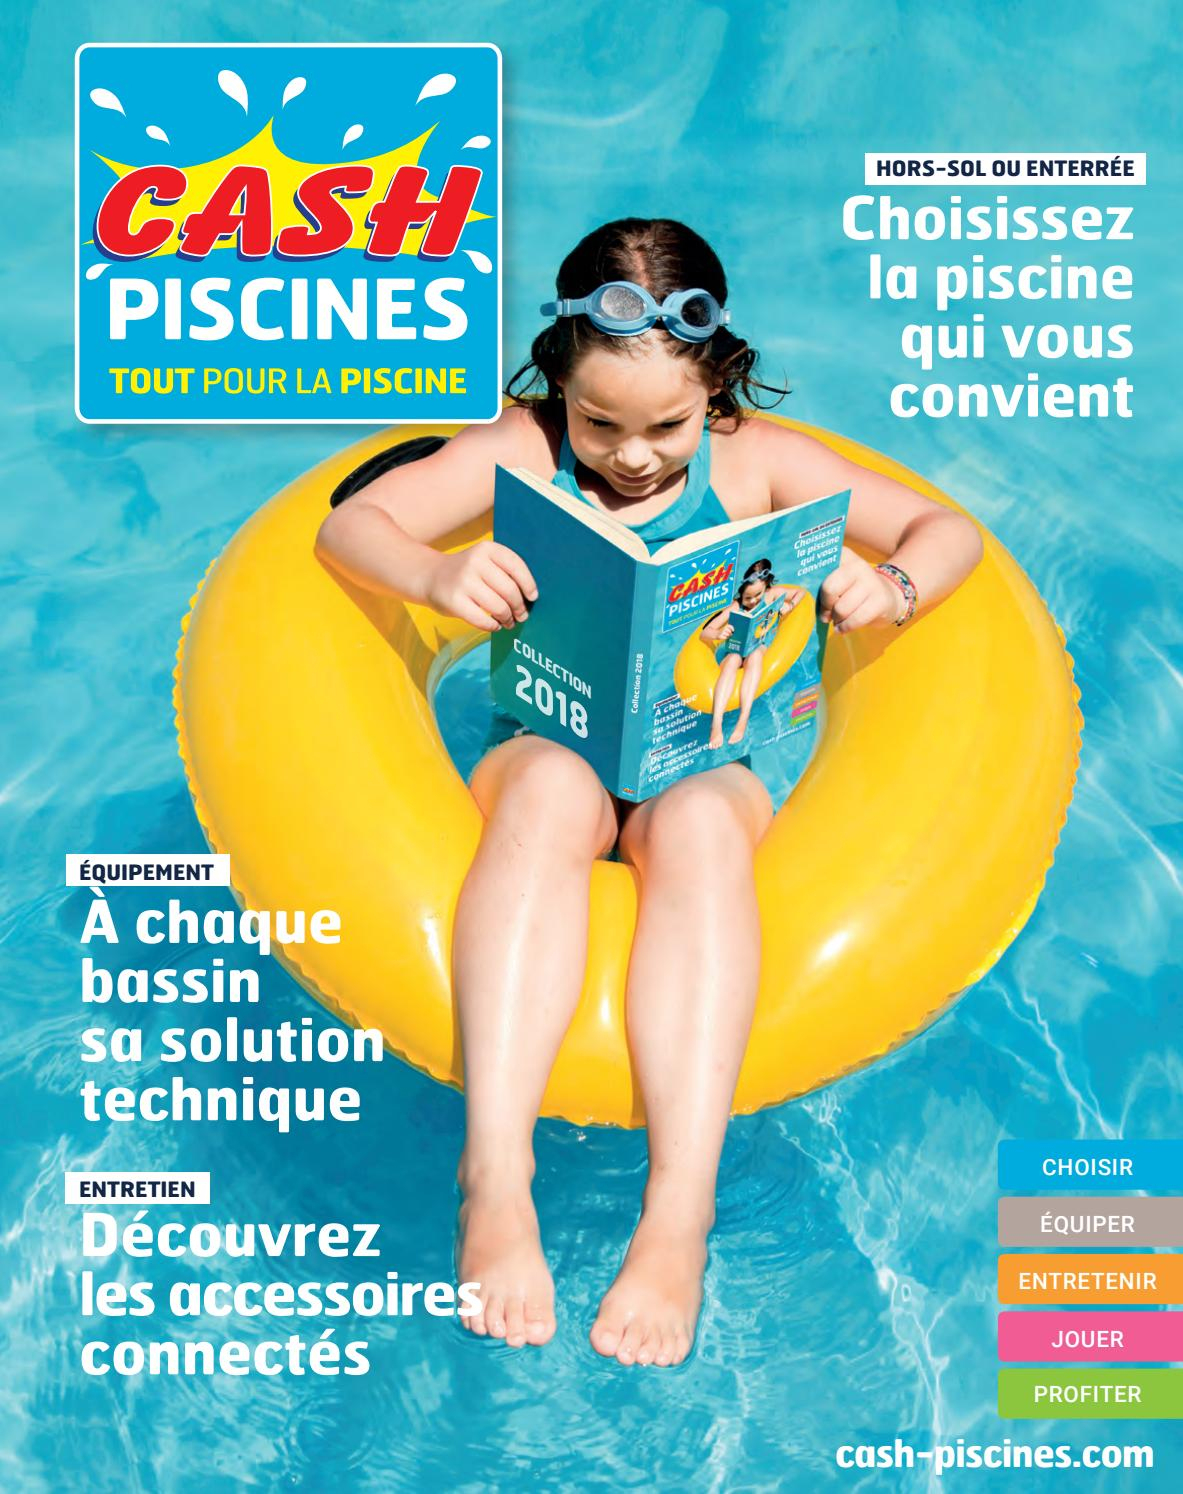 Catalogue Cash Piscine 2018 By Octave Octave - Issuu serapportantà Cash Piscine Pierrelatte